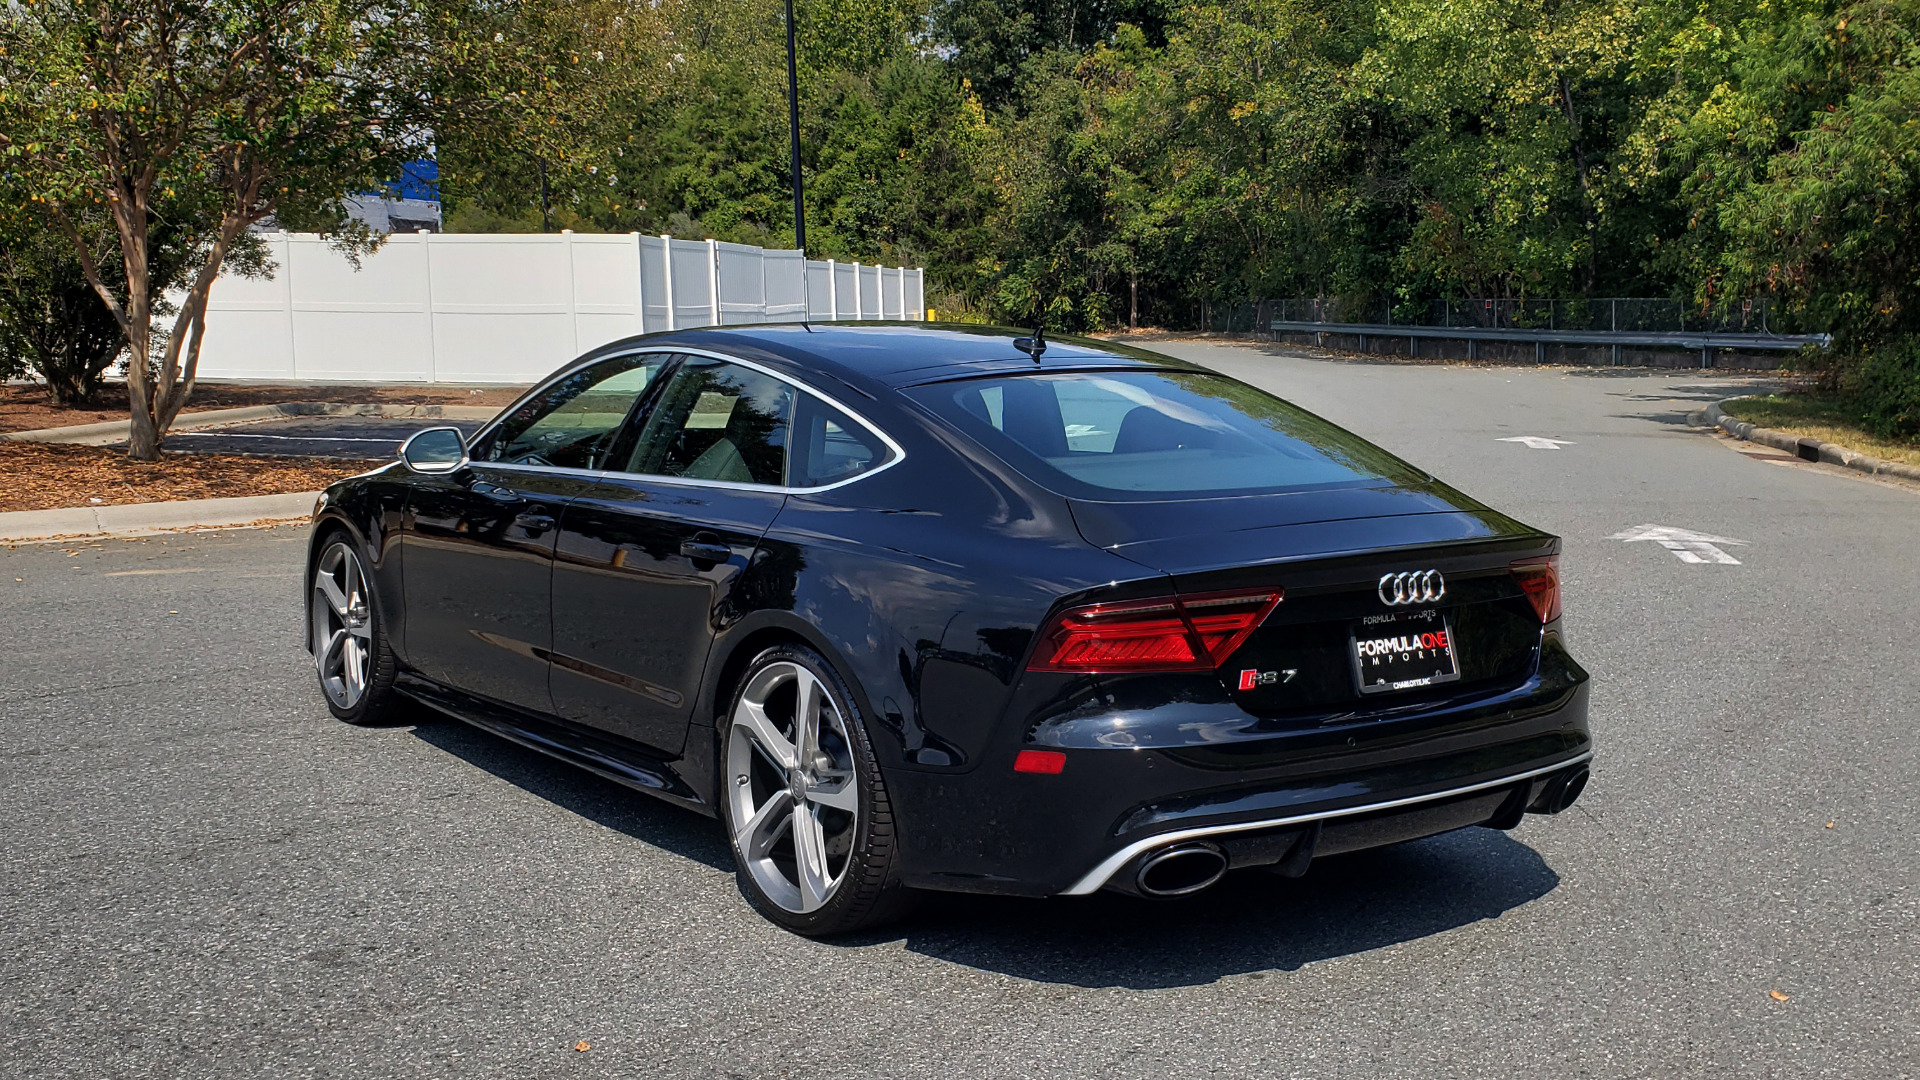 Used 2016 Audi RS 7 PRESTIGE / NAV / SUNROOF / BOSE / CAMERA / HTD STS for sale Sold at Formula Imports in Charlotte NC 28227 6